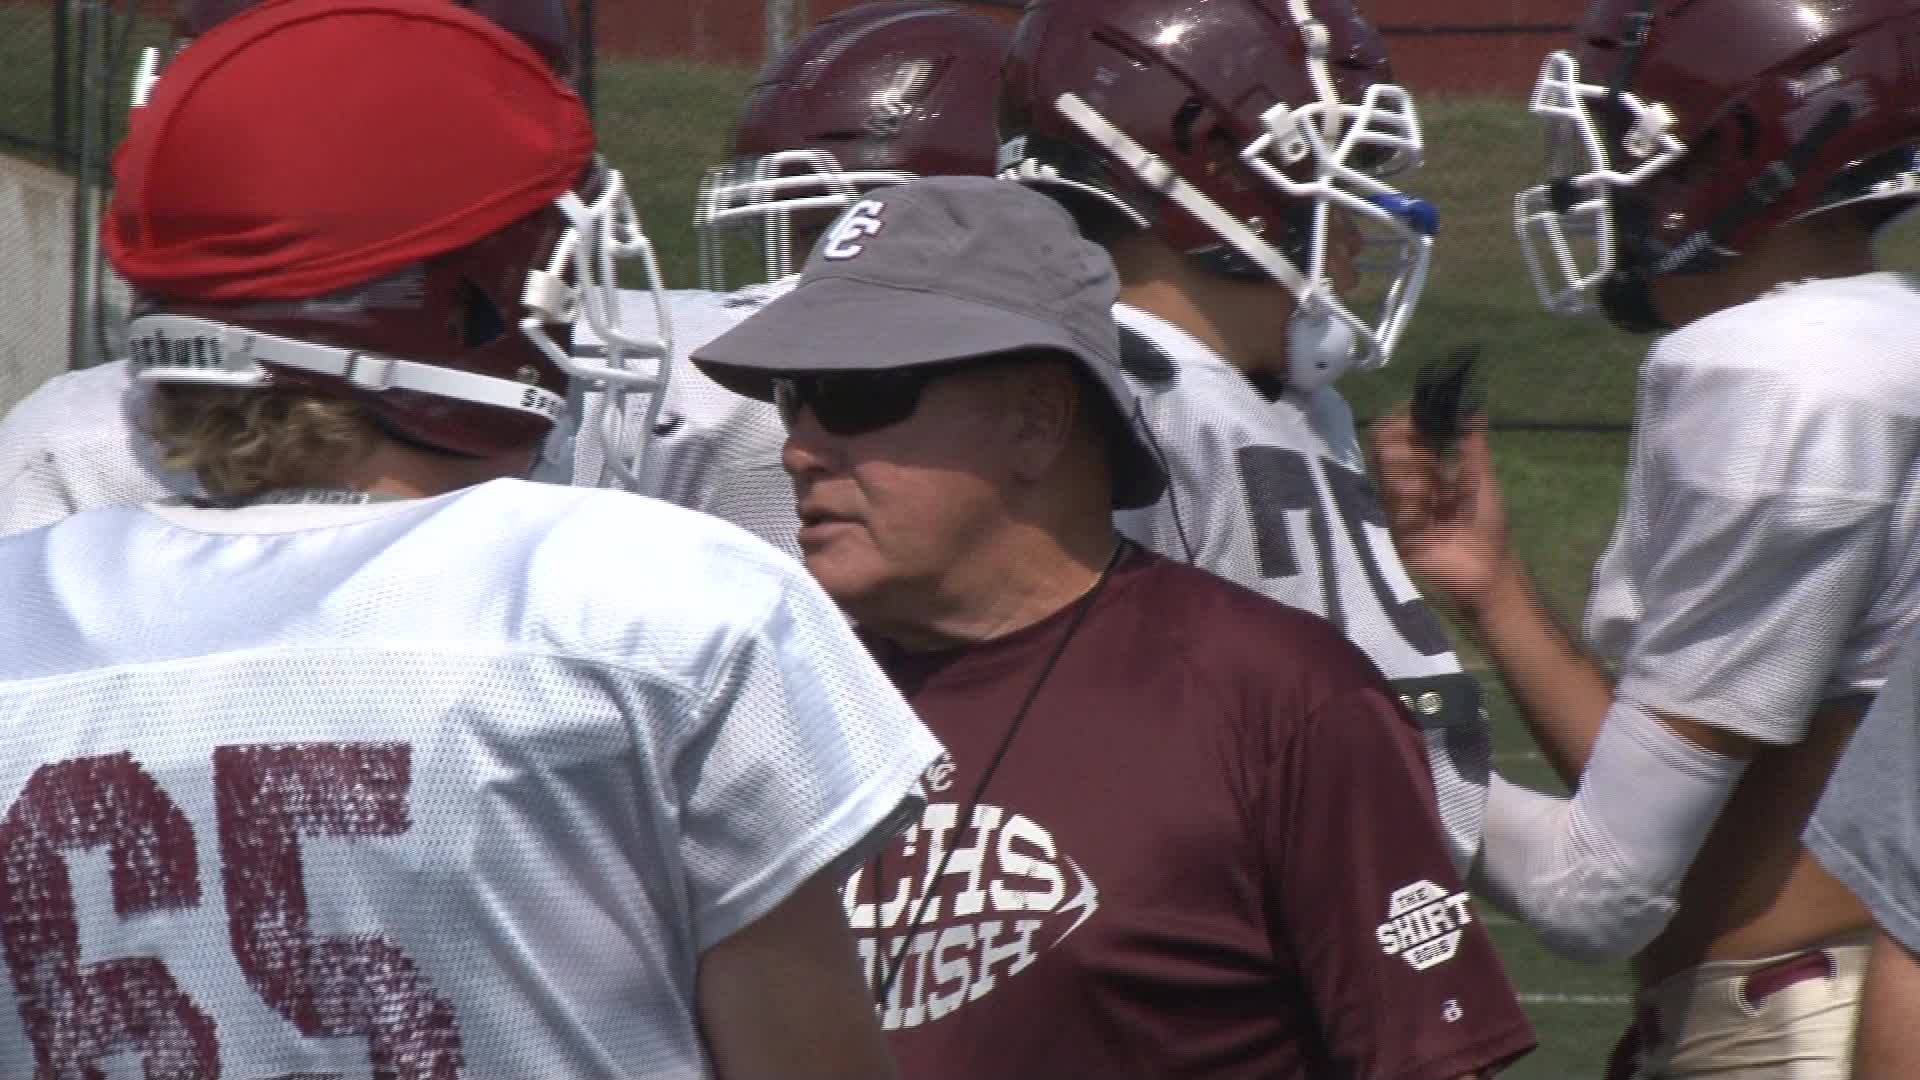 Wheeling Central Maroon Knights 2019 High School Football Preview